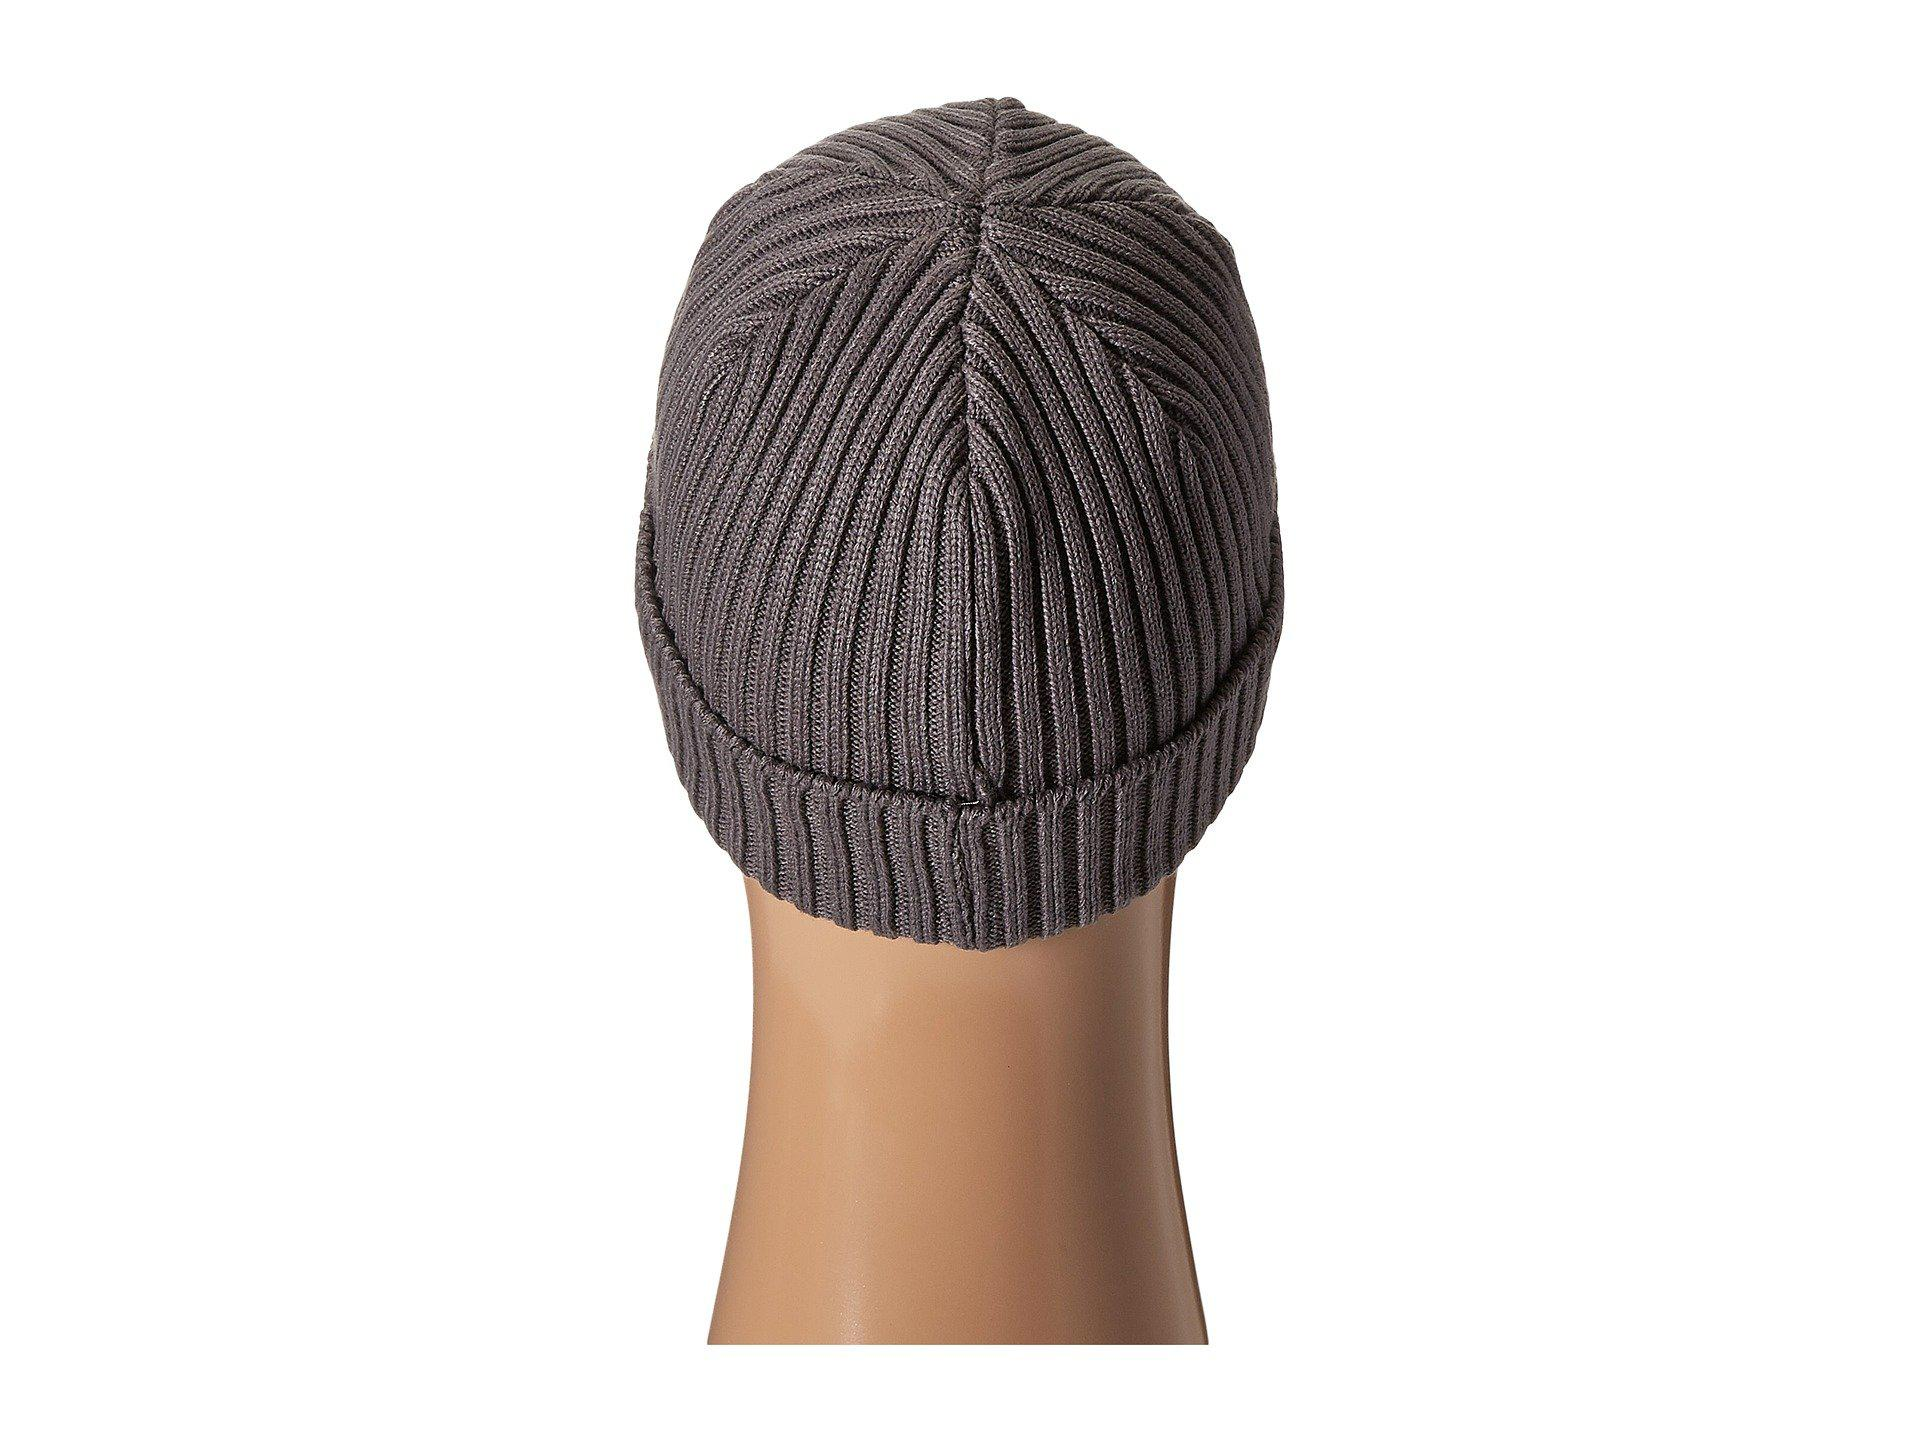 16503a3a Timberland Th340113 Fitted Knit Watch Cap in Gray for Men - Lyst